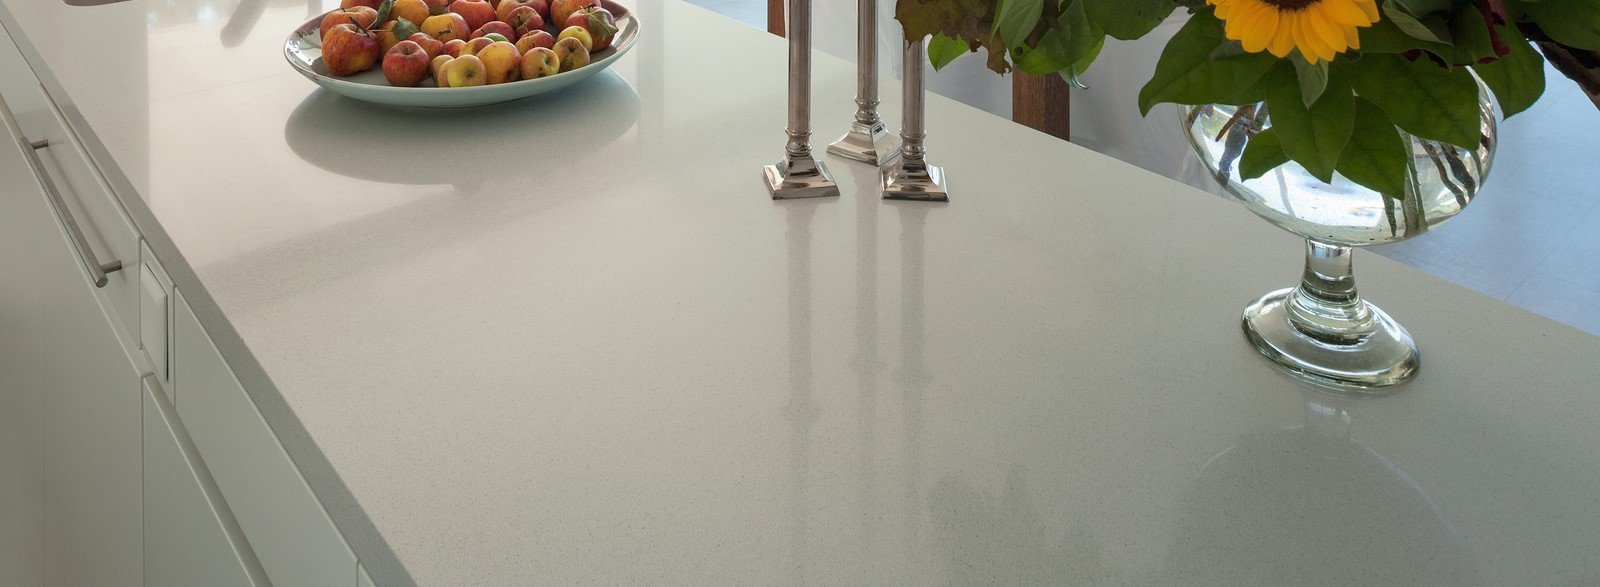 Silestone will not stain